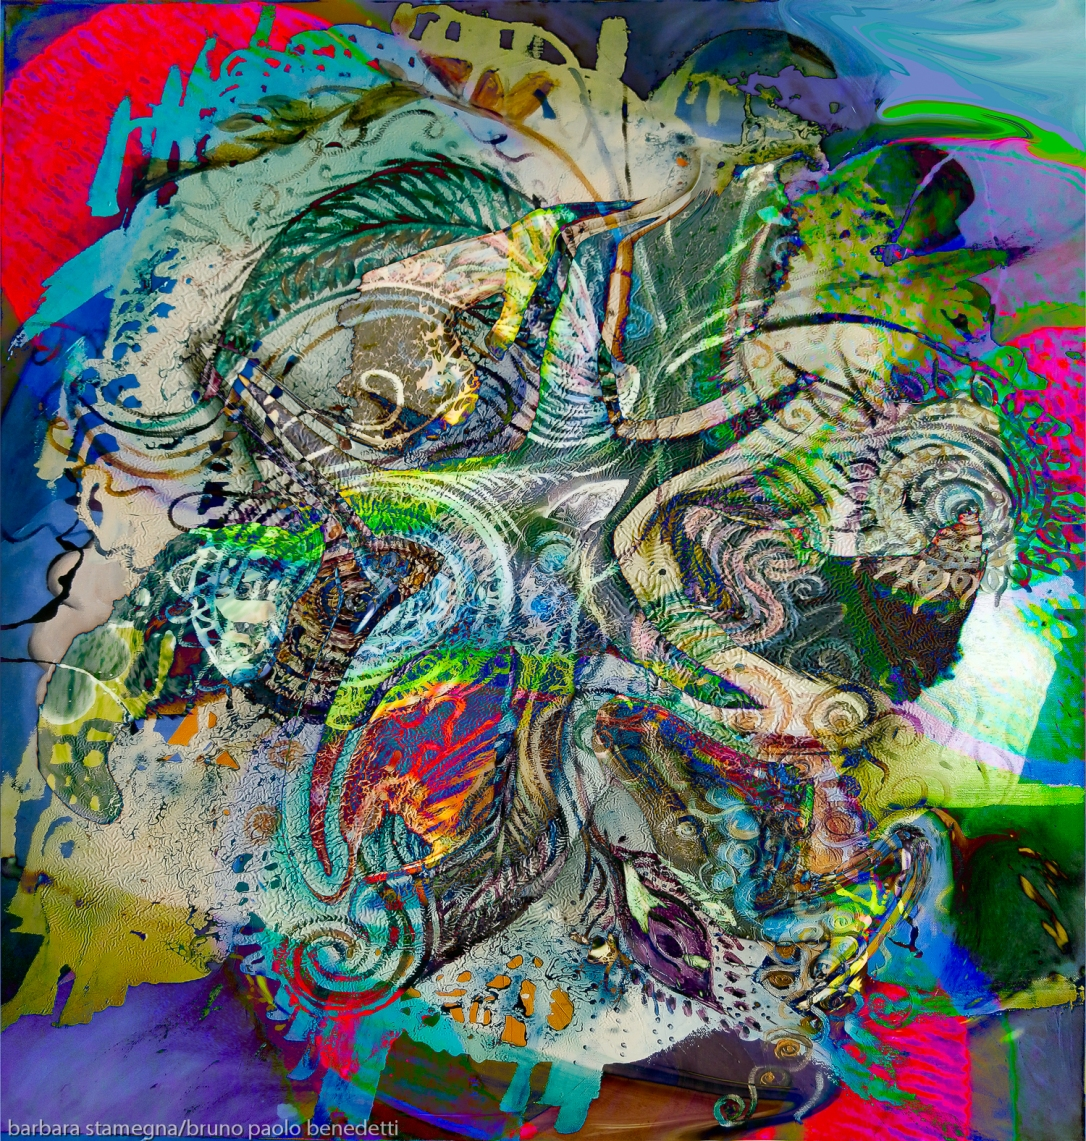 mottled multicolored abstract composition image with detailed objects and shapes photography painting fusion art